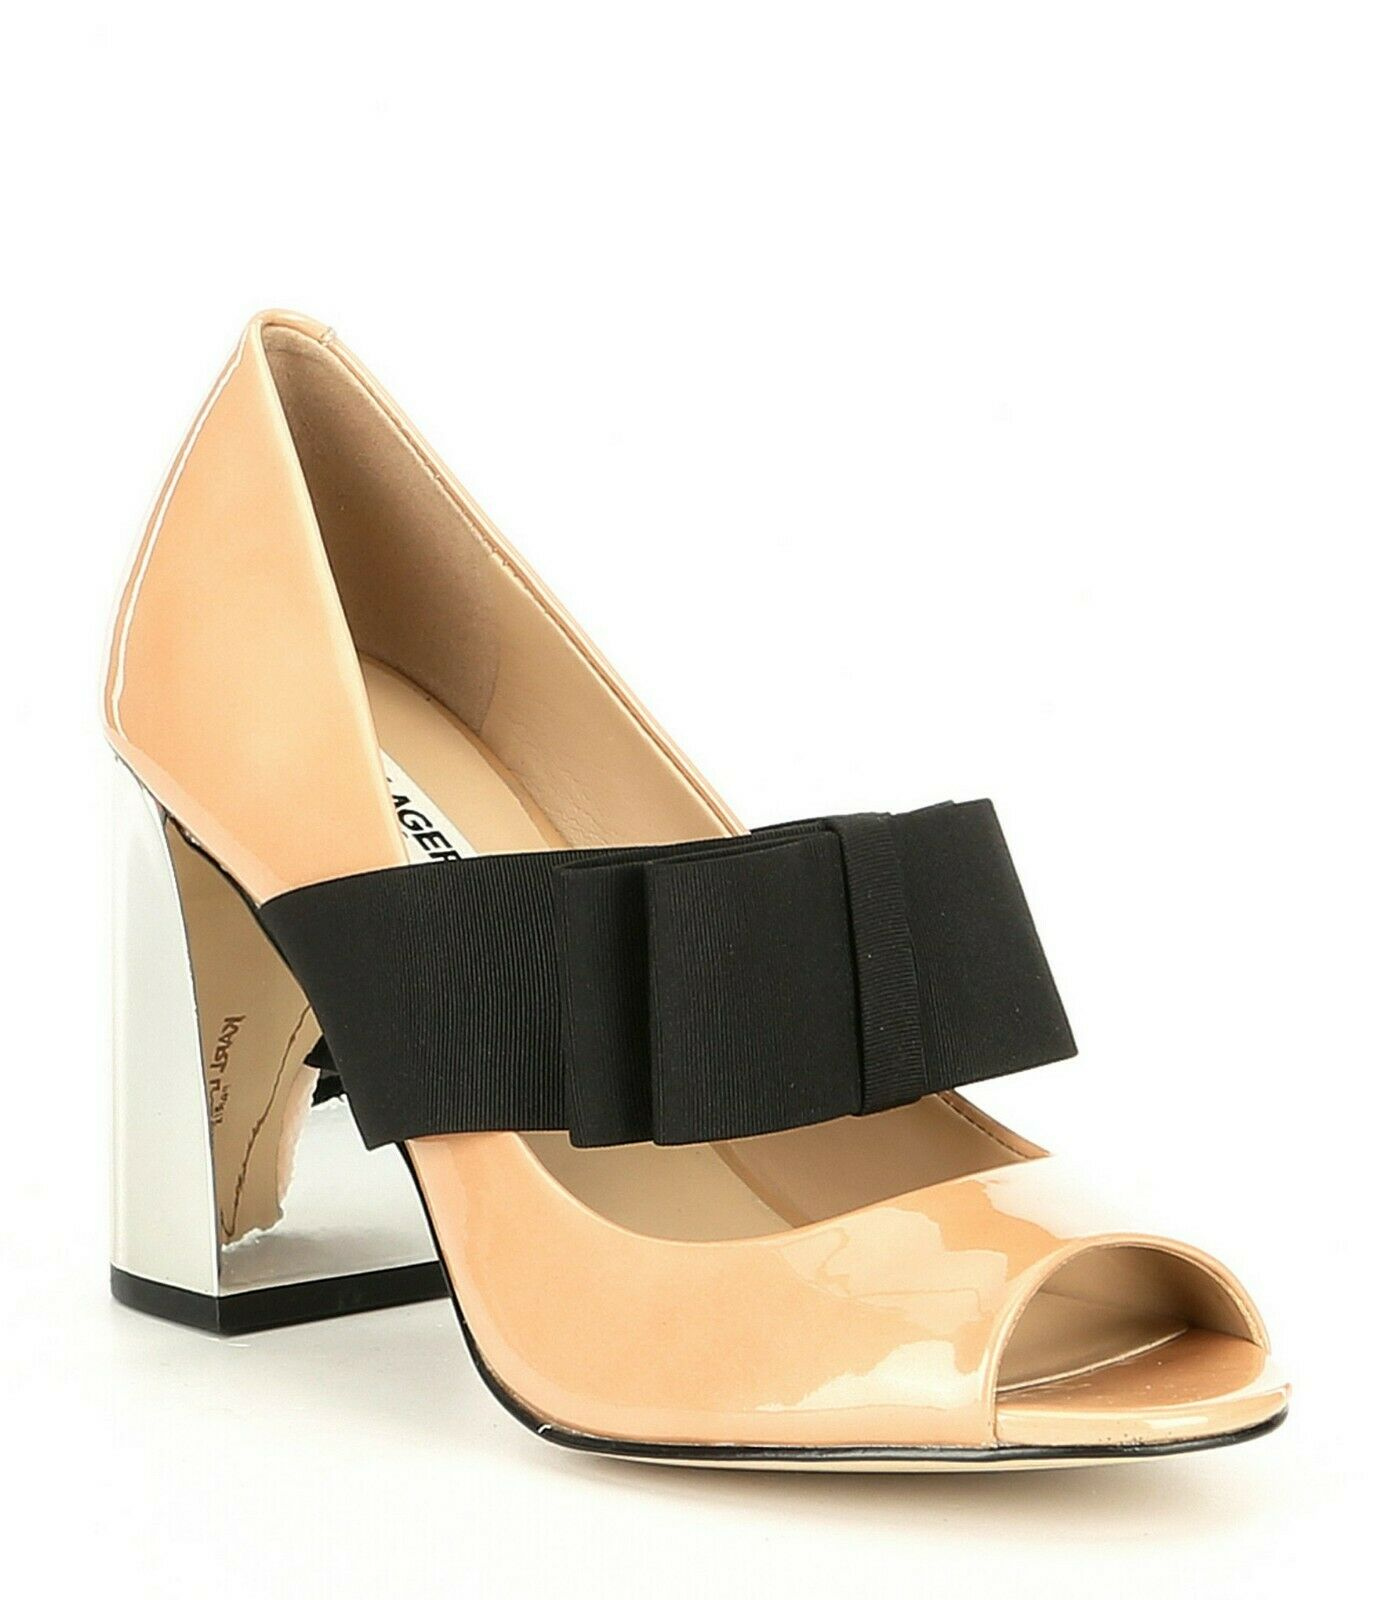 New Karl Lagerfeld Nude Patent Leather Everett Almond High Heel shoes Sz 7.5